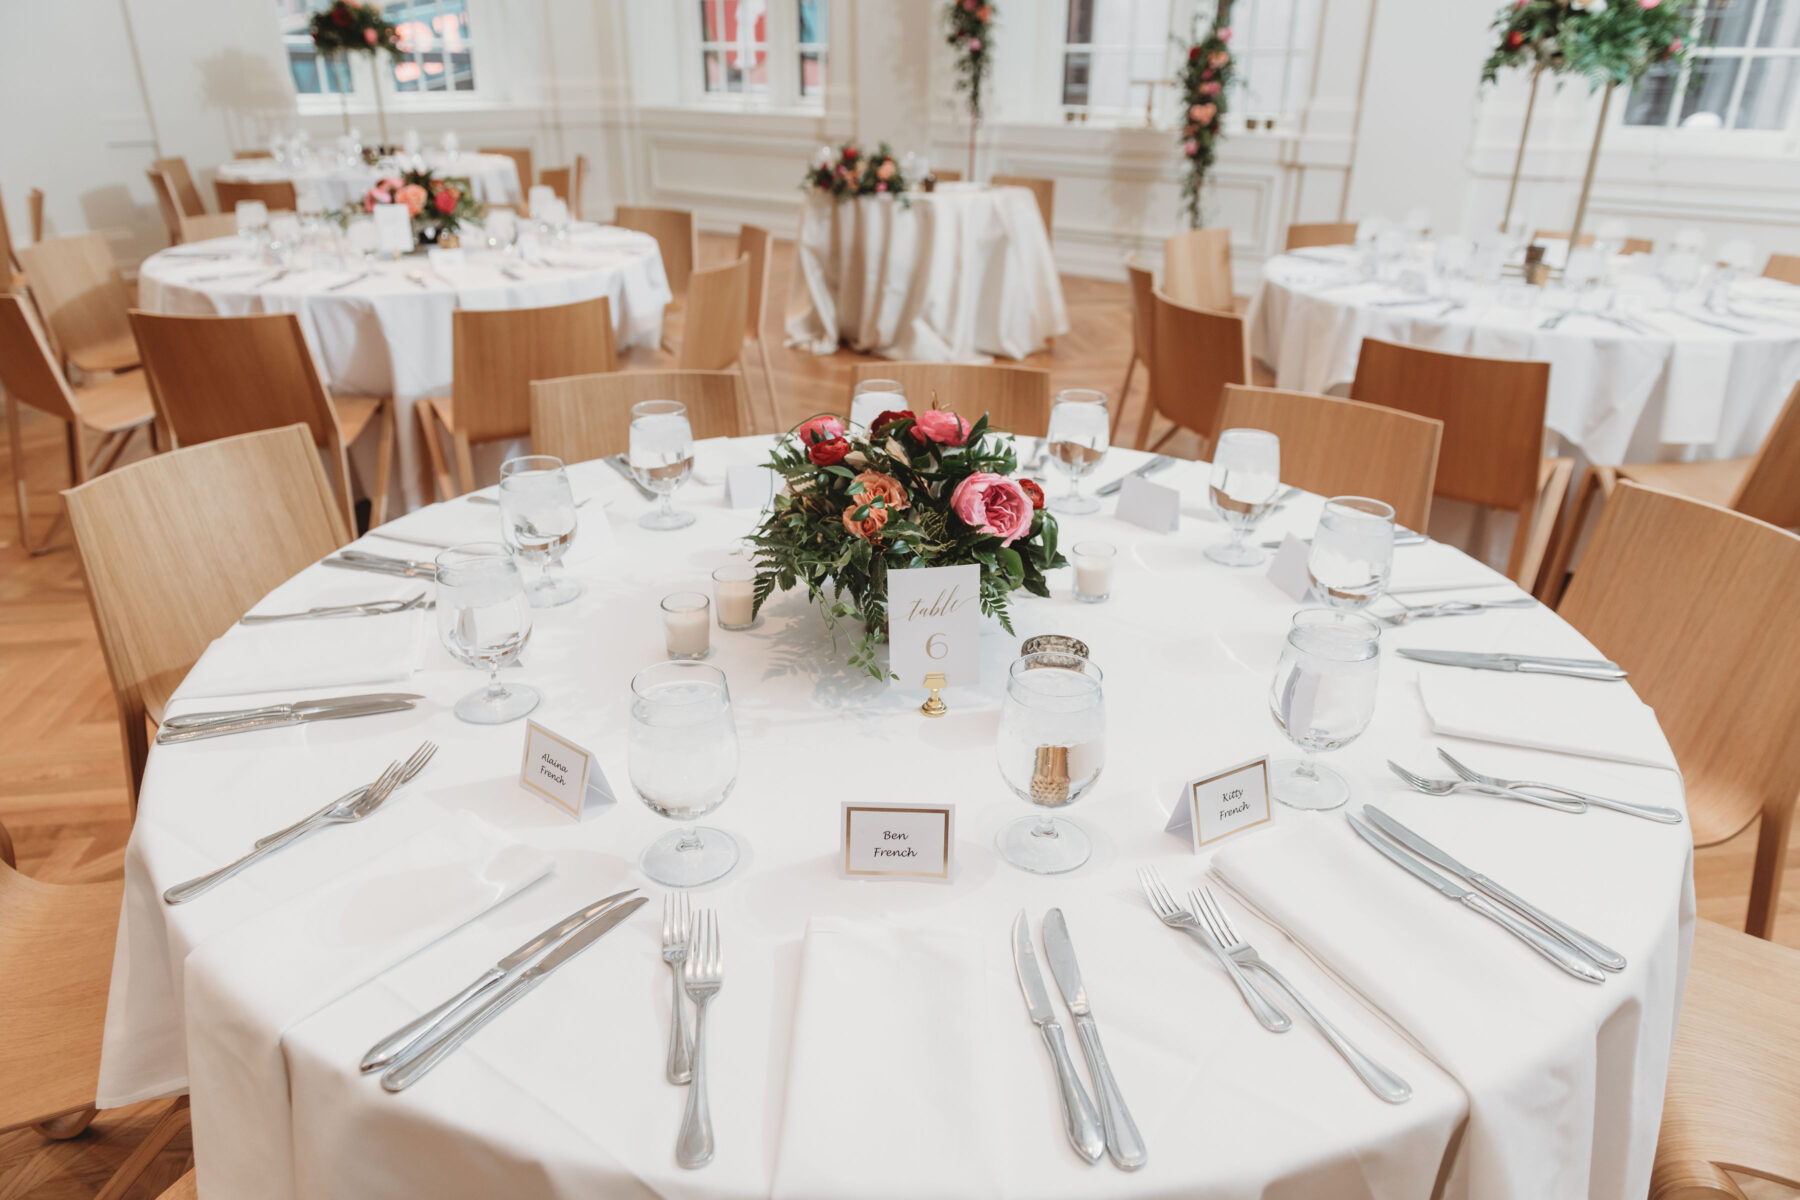 Pink and red wedding centerpieces: Summer Tennessee Wedding at Noelle from Jayde J. Smith Events featured on Nashville Bride Guide